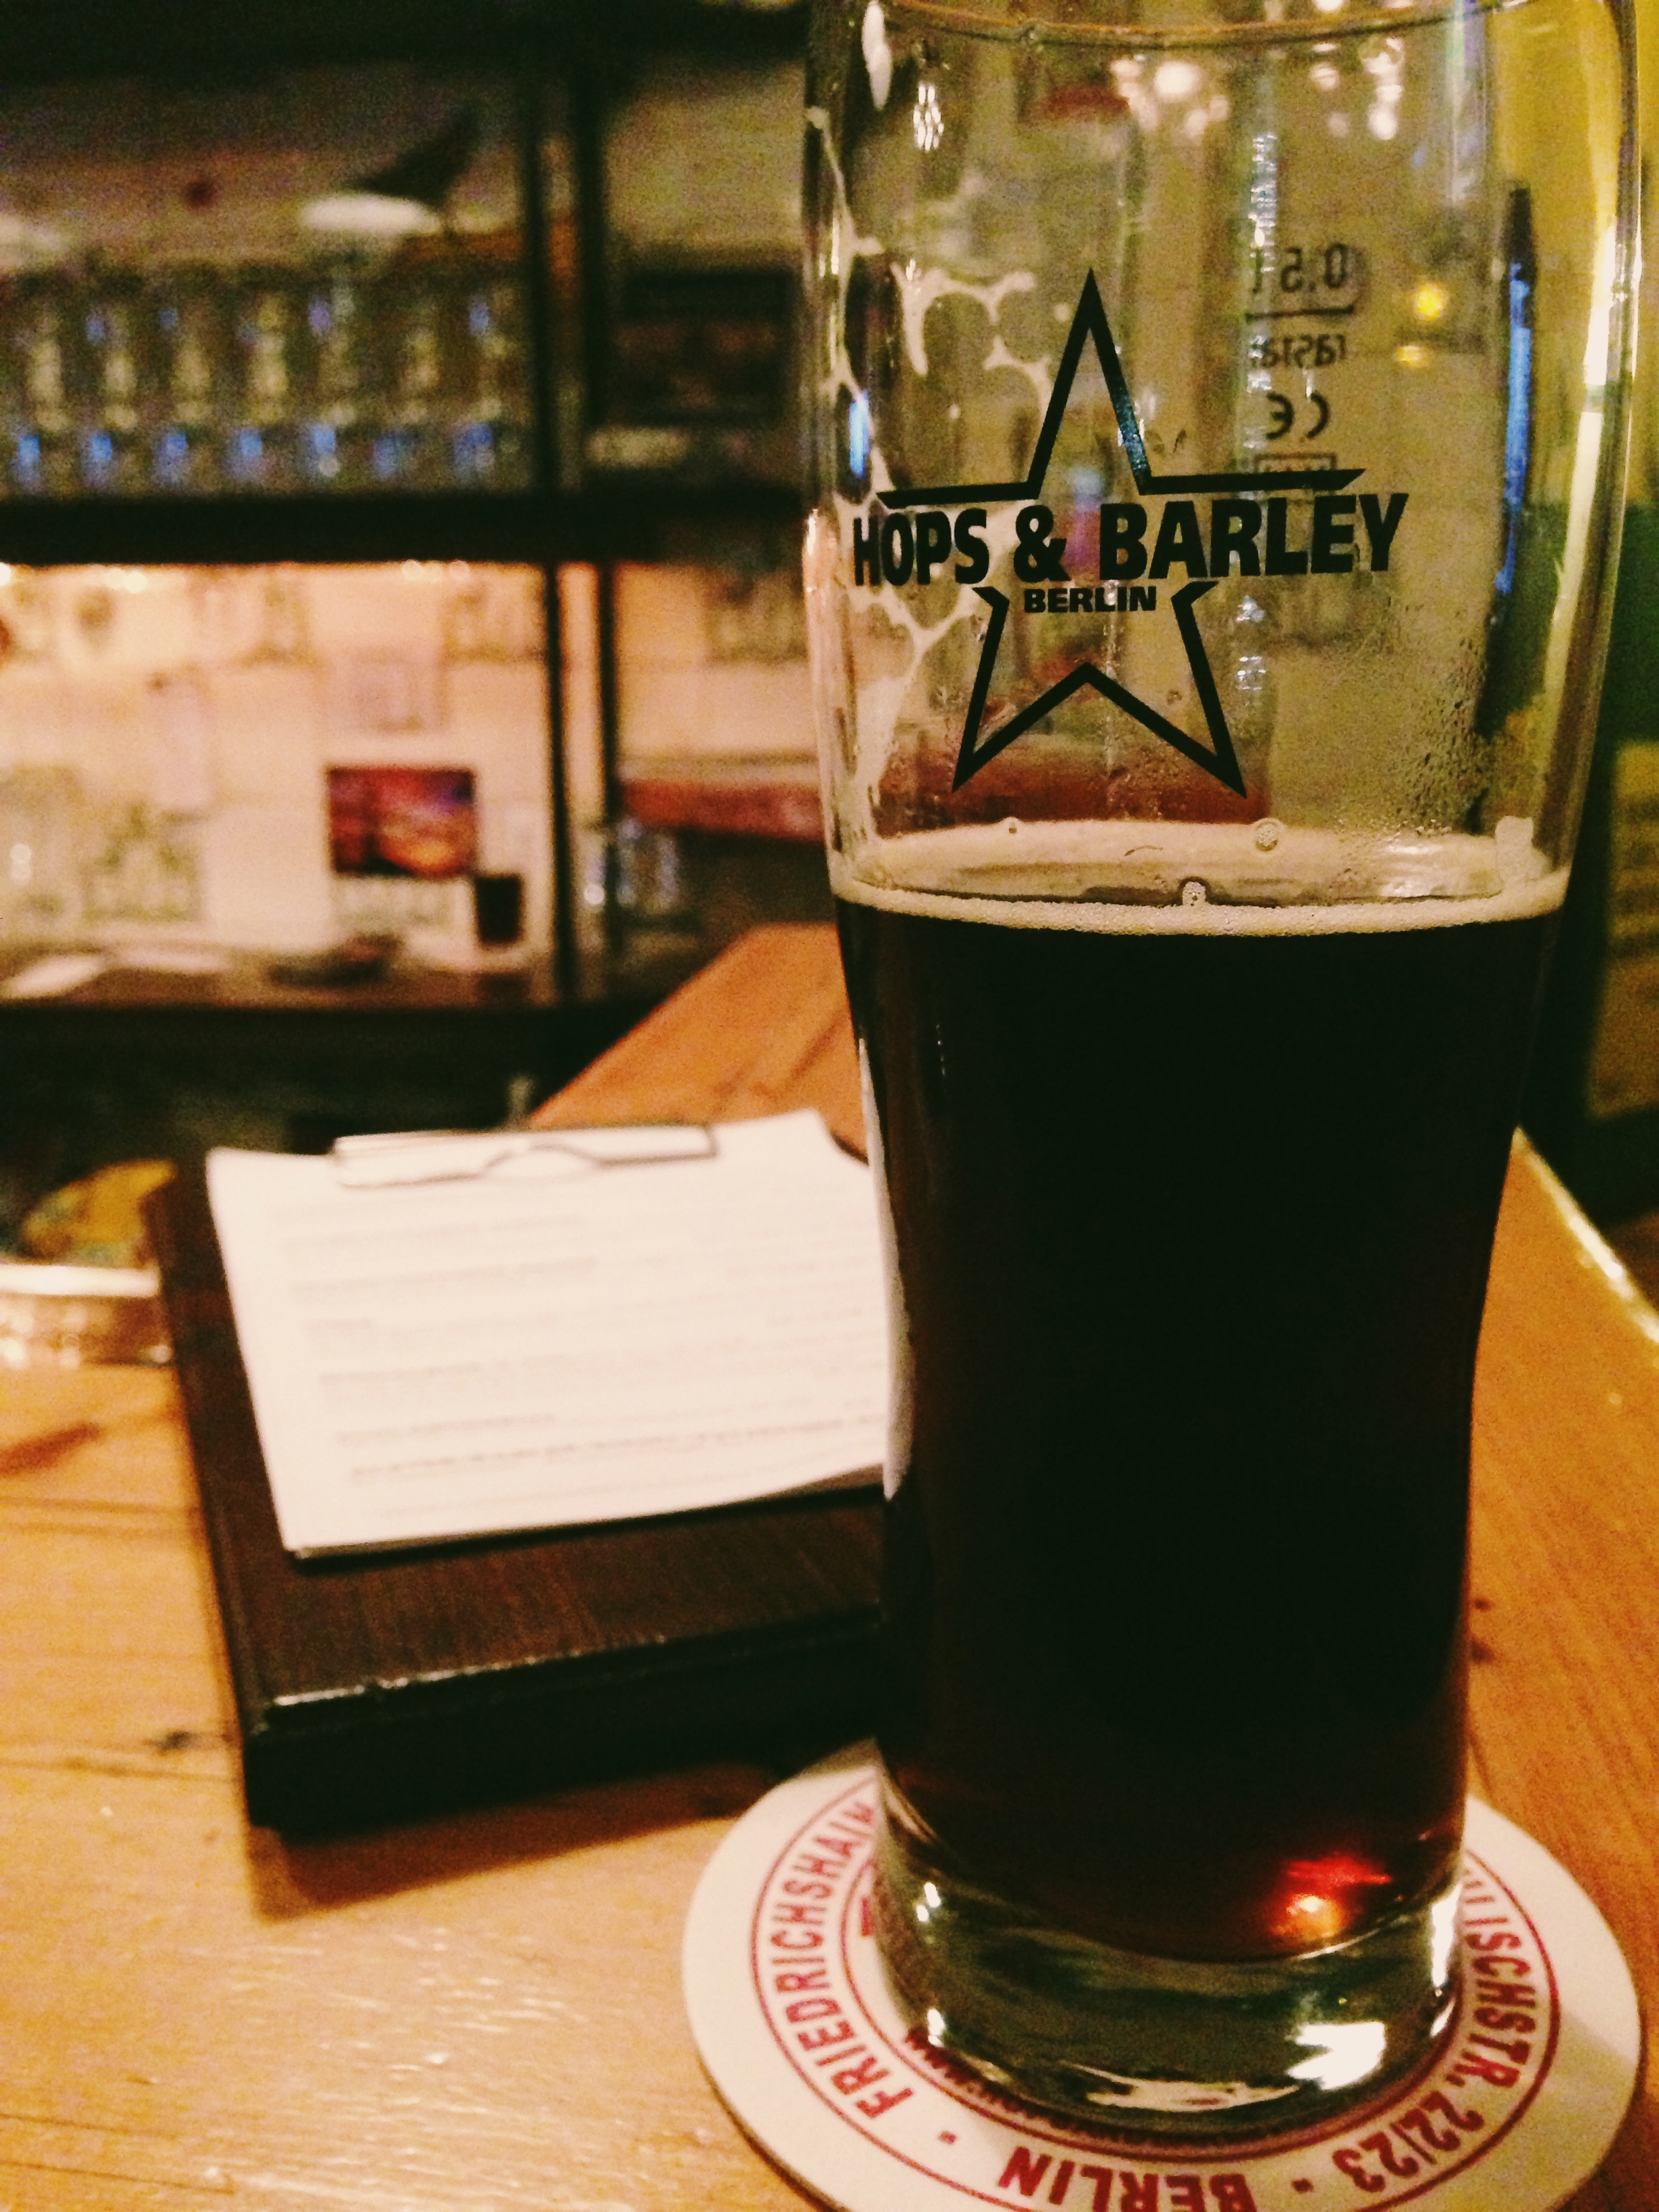 Hops & Barley - awesome craft brewery